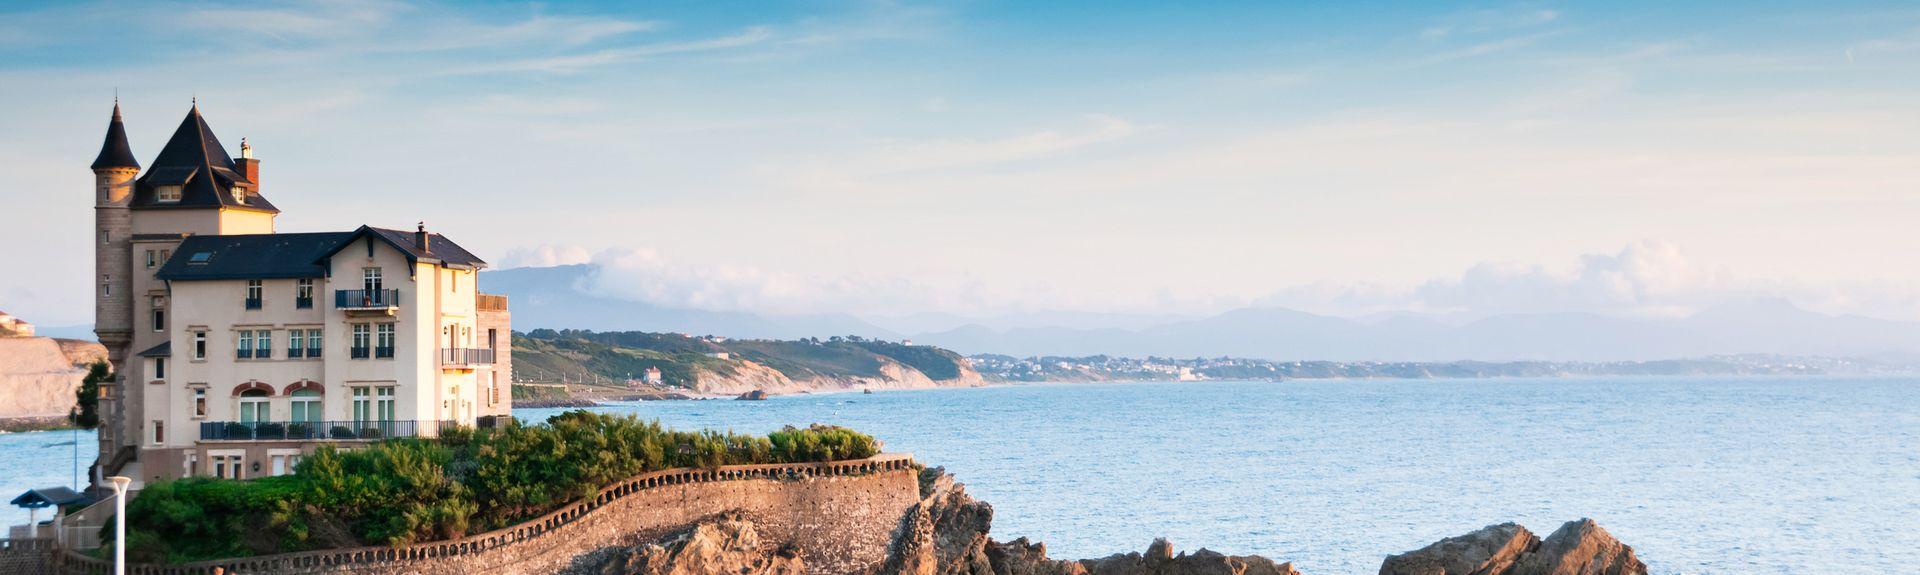 Vrbo® | Biarritz, FR Vacation Rentals: Reviews & Booking